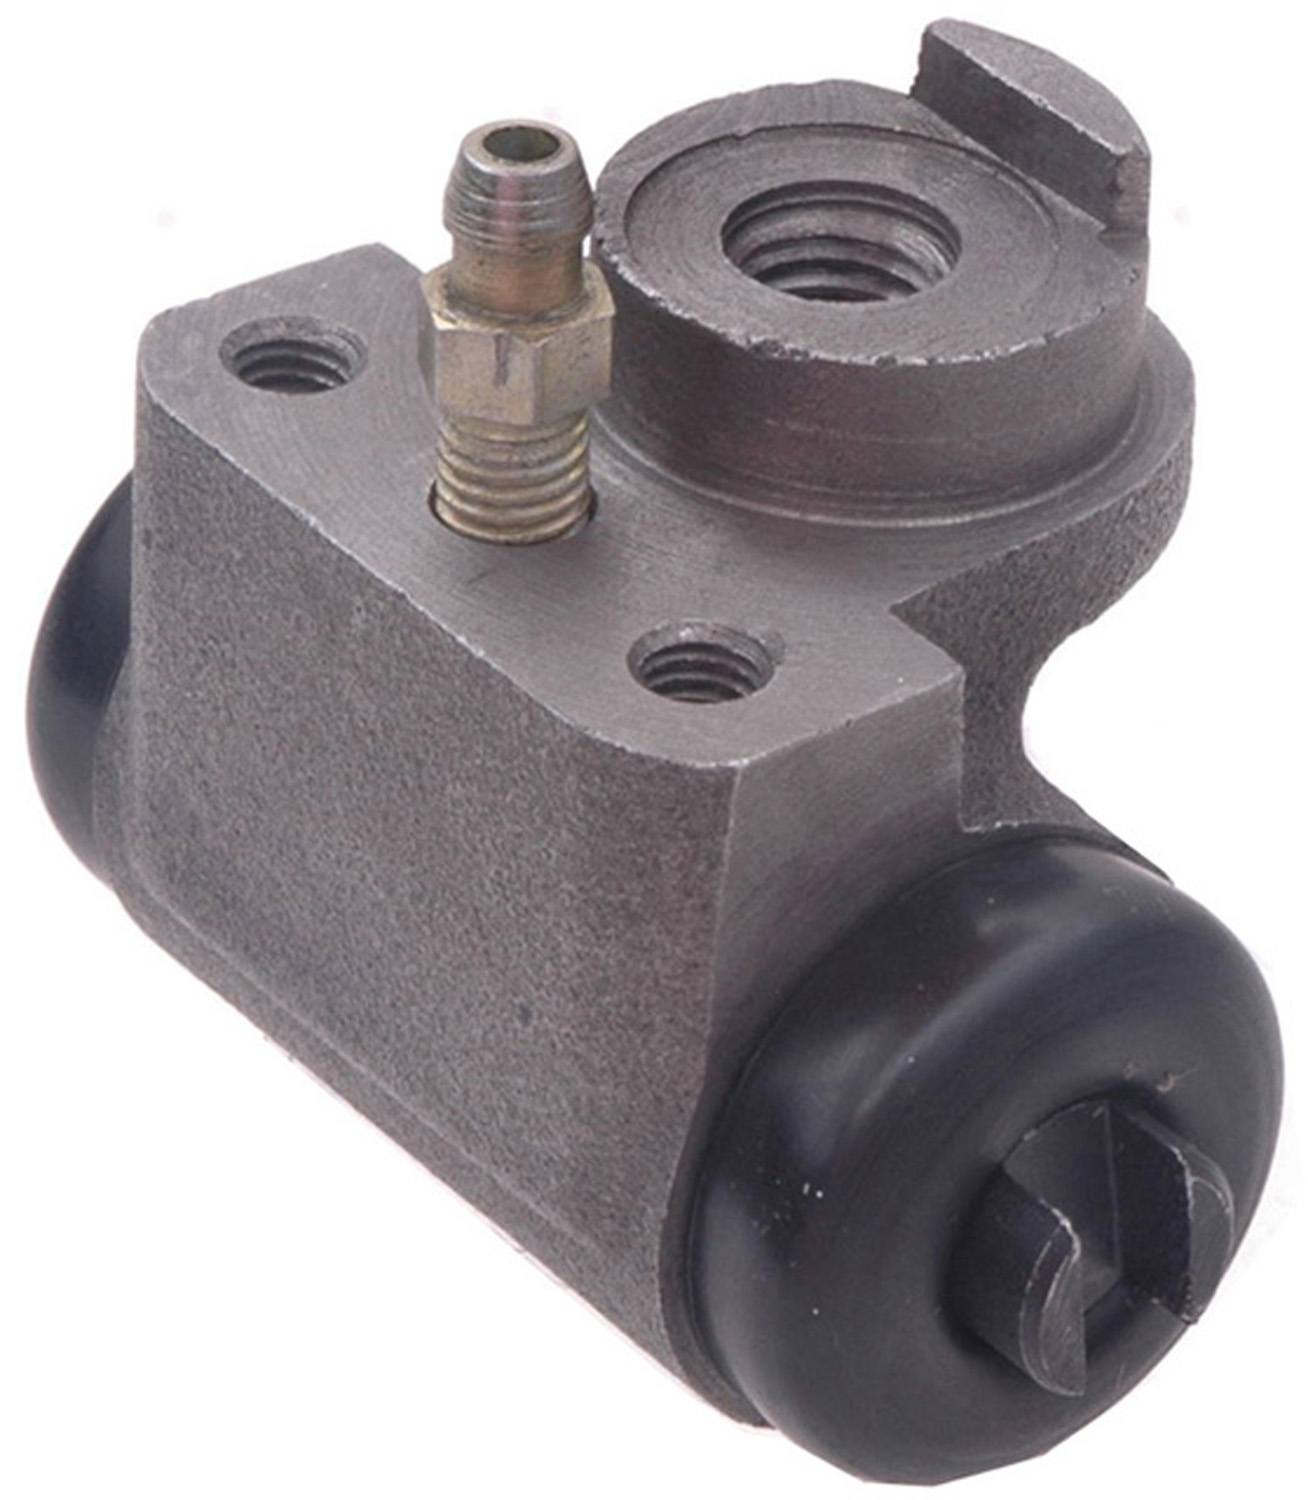 Replacement Parts Brake System ACDelco 18E1216 Professional Rear Drum Brake Wheel Cylinder Assembly